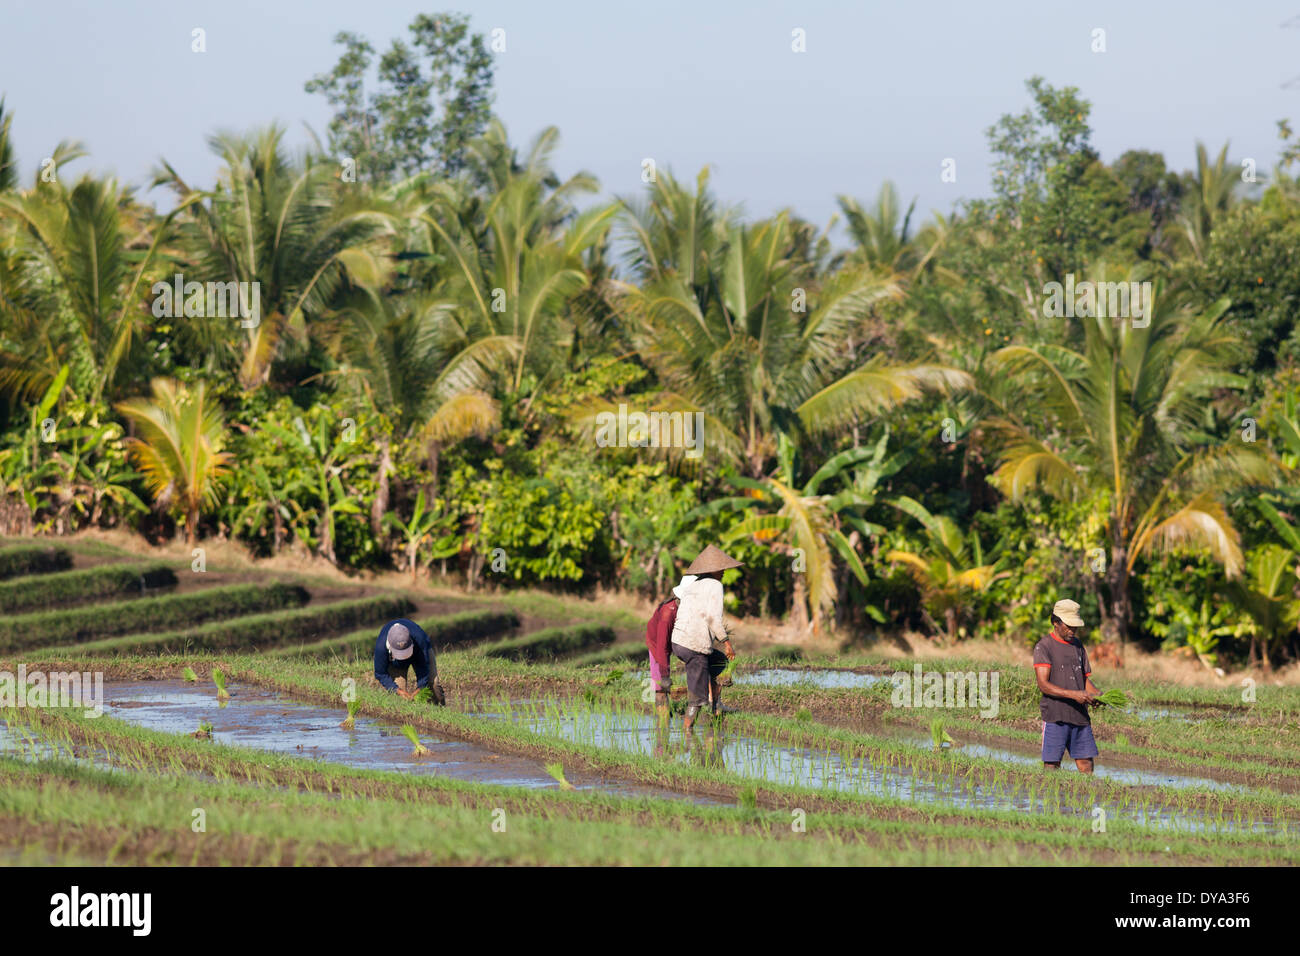 Group of people working on rice field in region of Antosari and Belimbing (probably closer to Antosari), Bali, Indonesia - Stock Image